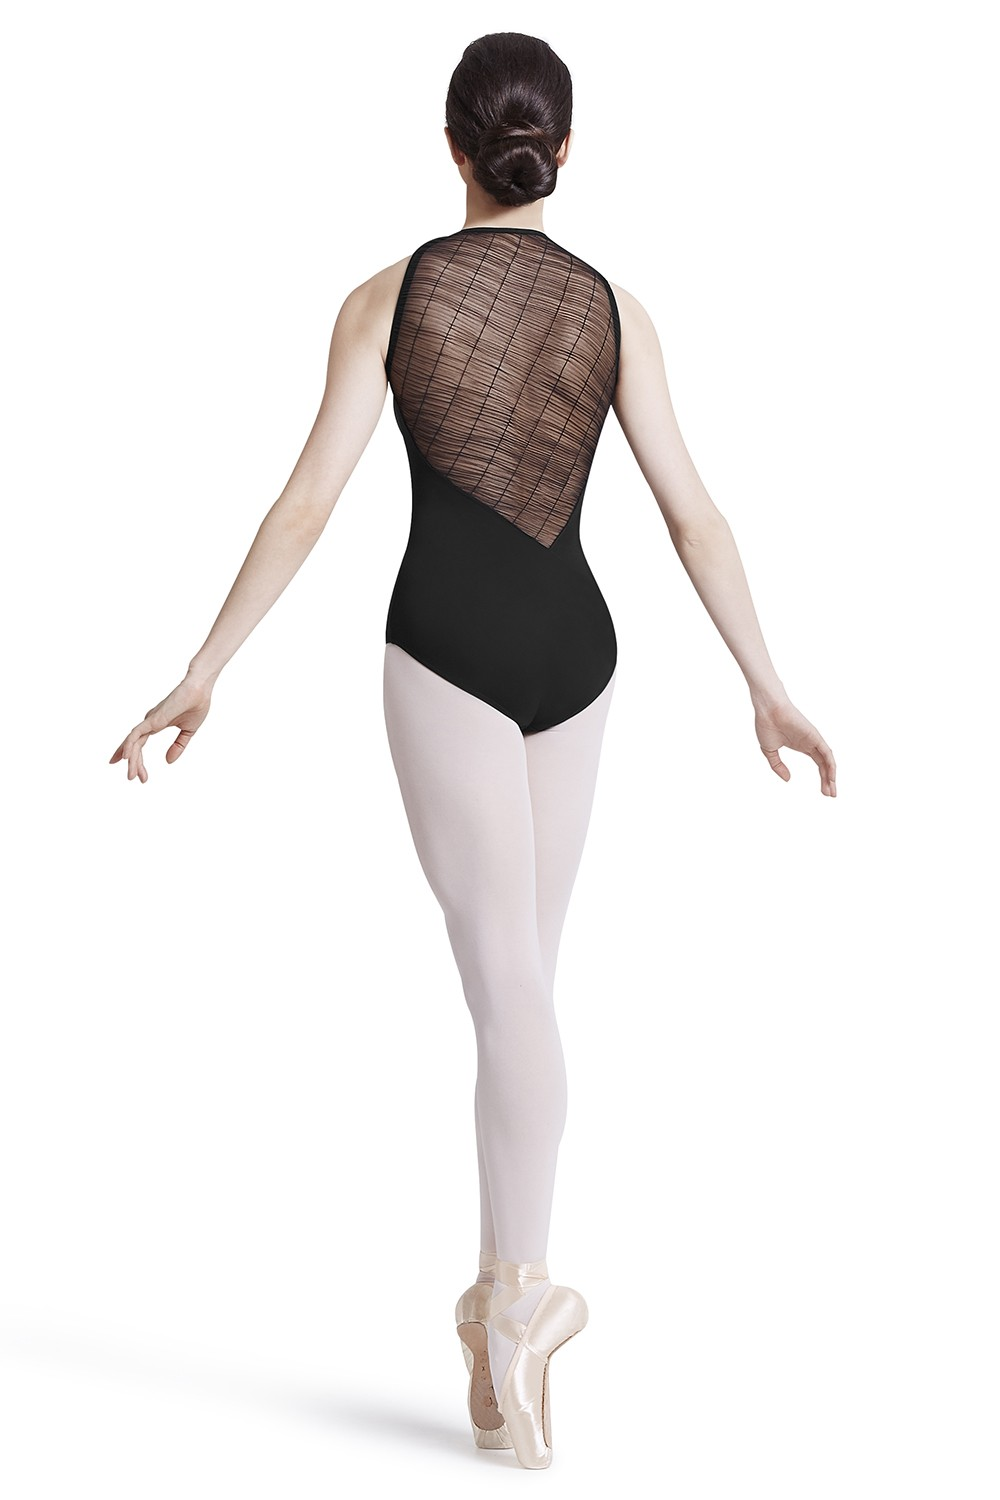 Body A Spalline Sottili  Women's Dance Leotards